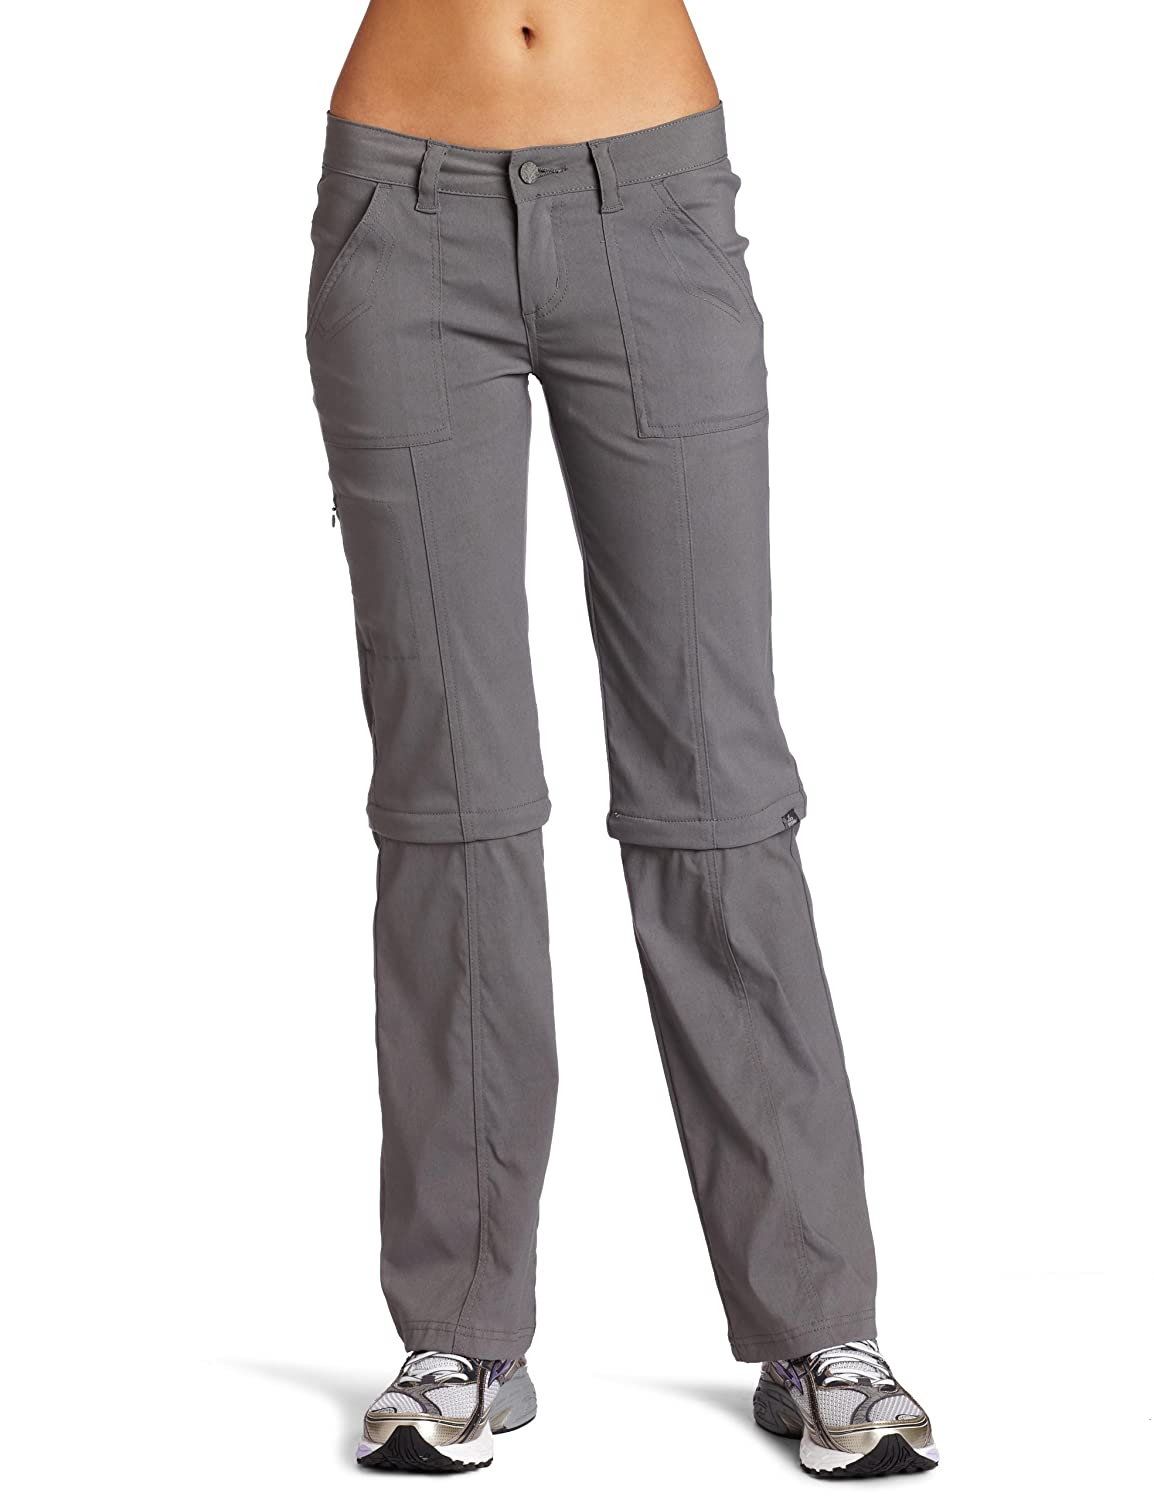 Convertible cargo pants for women